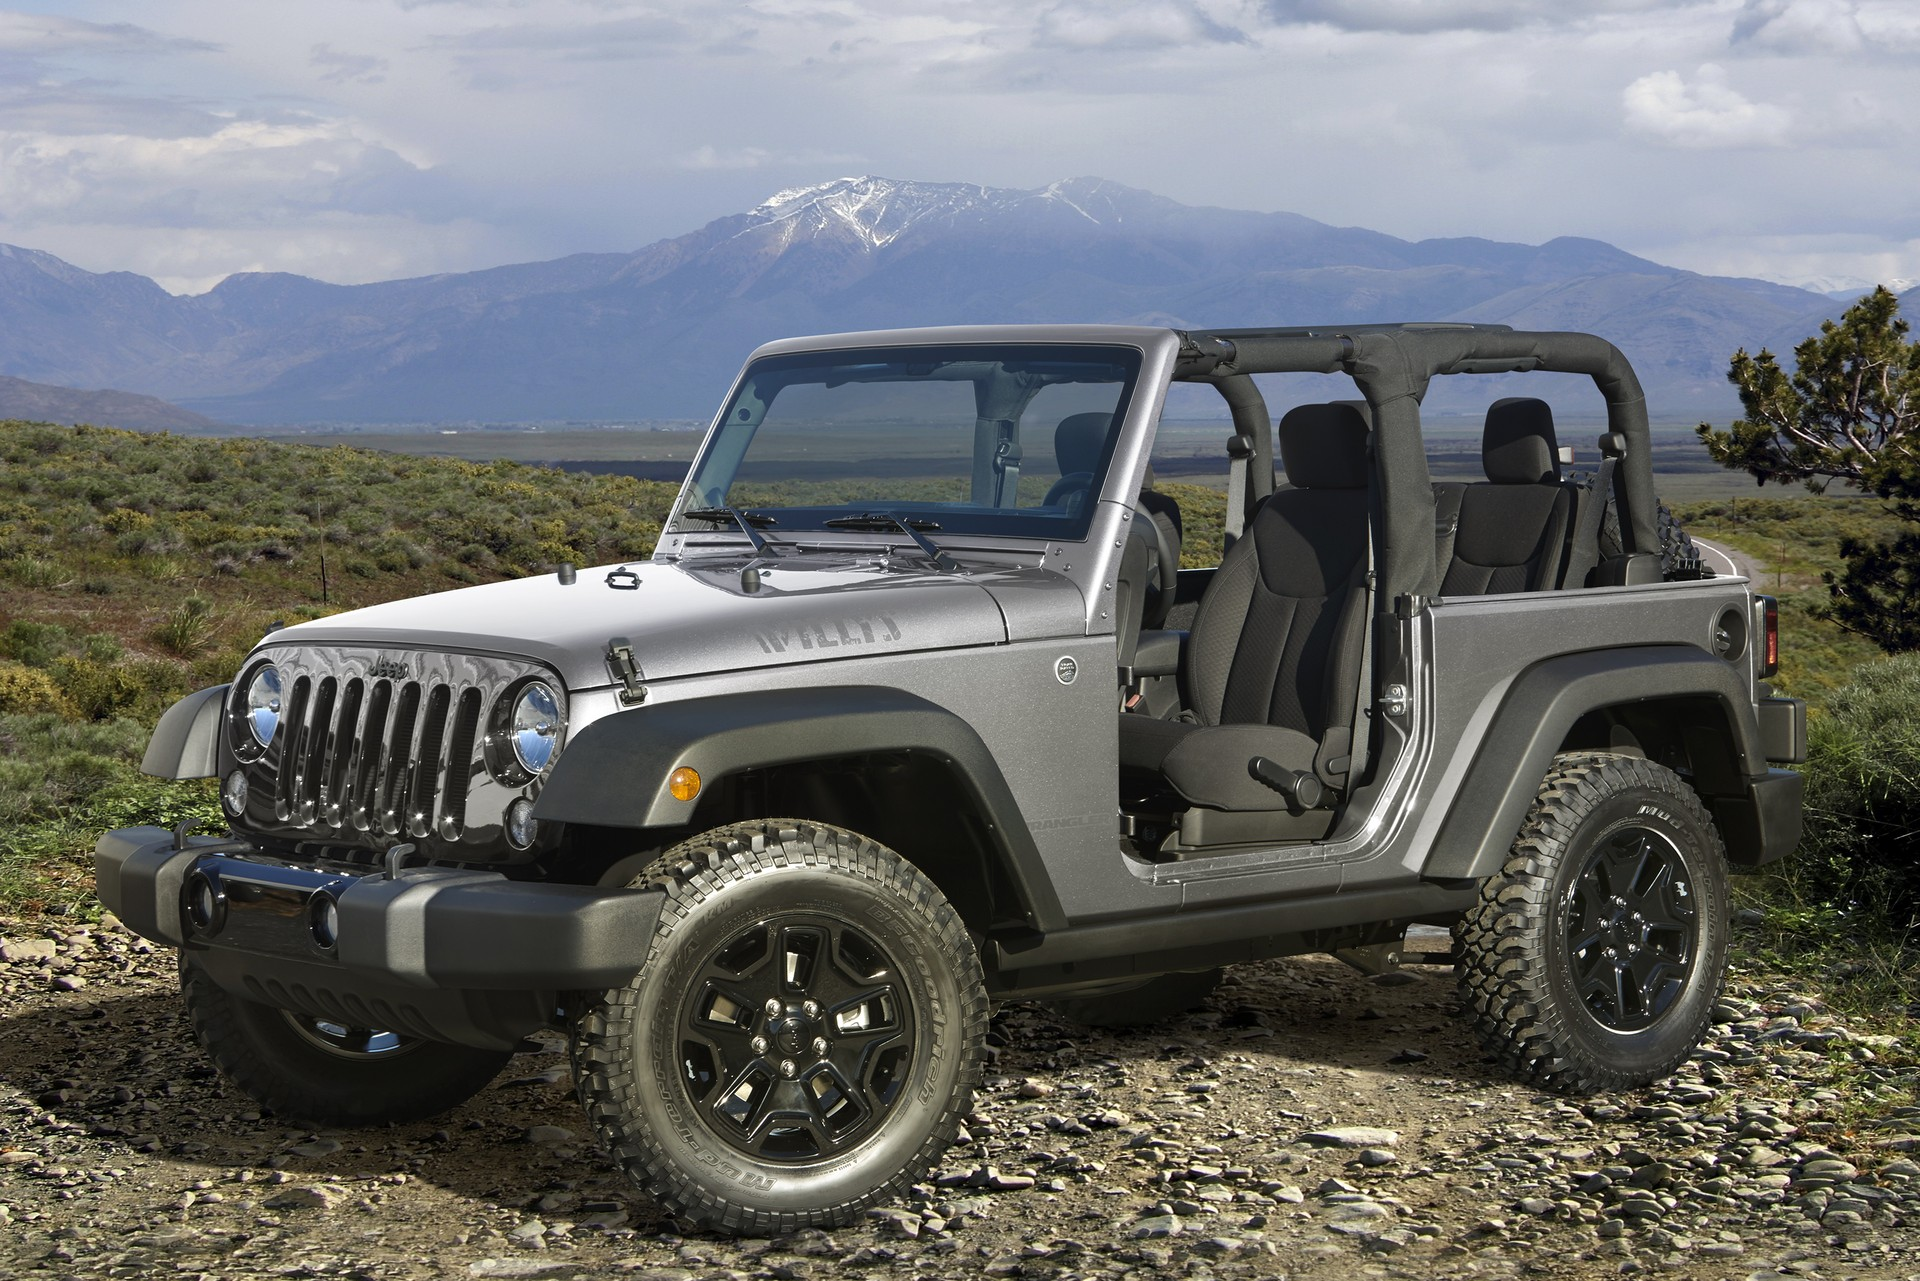 2015 Jeep Wrangler Review Ratings Specs Prices and s The